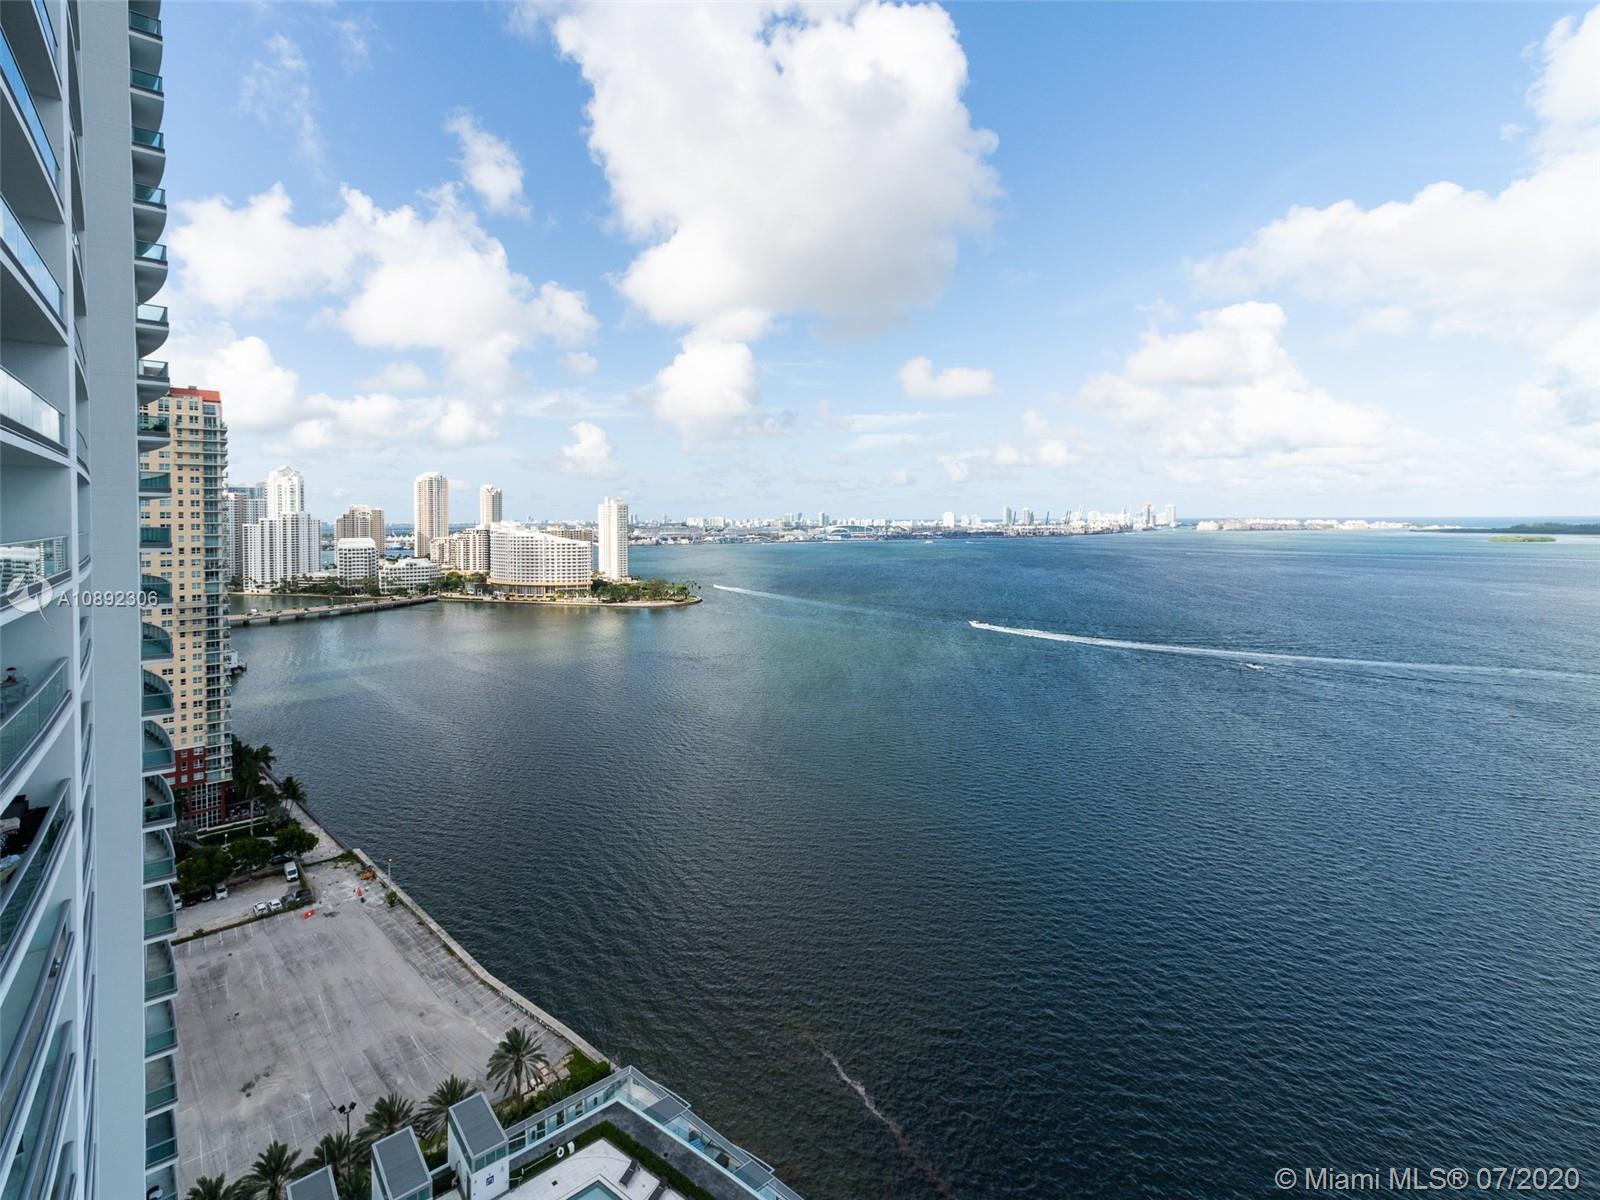 Unrivaled water views from this high floor corner unit in the Jade Brickell. This is the best line in the building and the view from this unit clears all of the lower Brickell Bay Drive neighboring buildings. Enjoy unobstructed views of the Ocean, Biscayne Bay, Key Biscayne, Fisher Island and South Beach from the sprawling balcony. Private elevator with stunning entry to the unit. High end remote operated black out shades throughout this smart home with customized voice controlled lighting.Top of the line kitchen with high end applicances and cabinetry. Gorgeous remodeled lobby and high end amenities including 5 star gym and spa, infinity pool and more.  Property is vacant and easy to show. Must see.